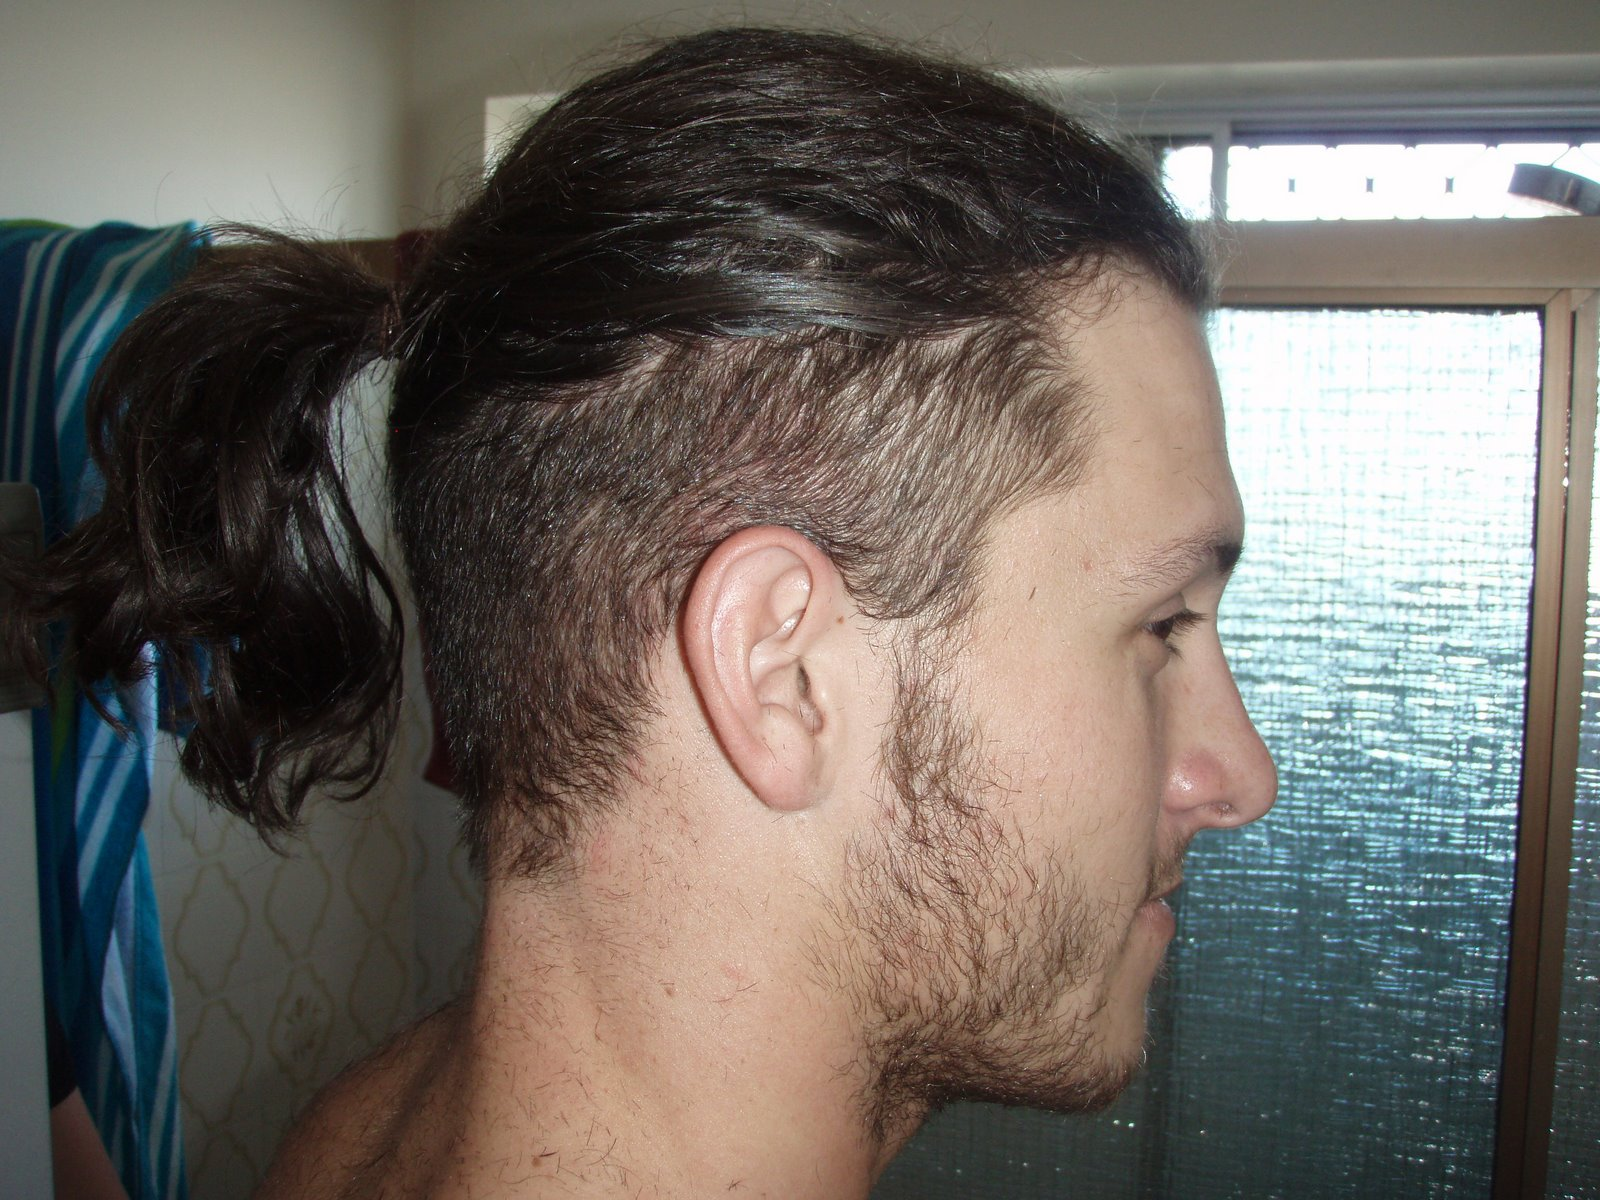 Guys with ponytails bodybuilding forums what do you guys think about it specifically an undercut ponytail i rocked one during the 90s and thinking about growing it back urmus Images